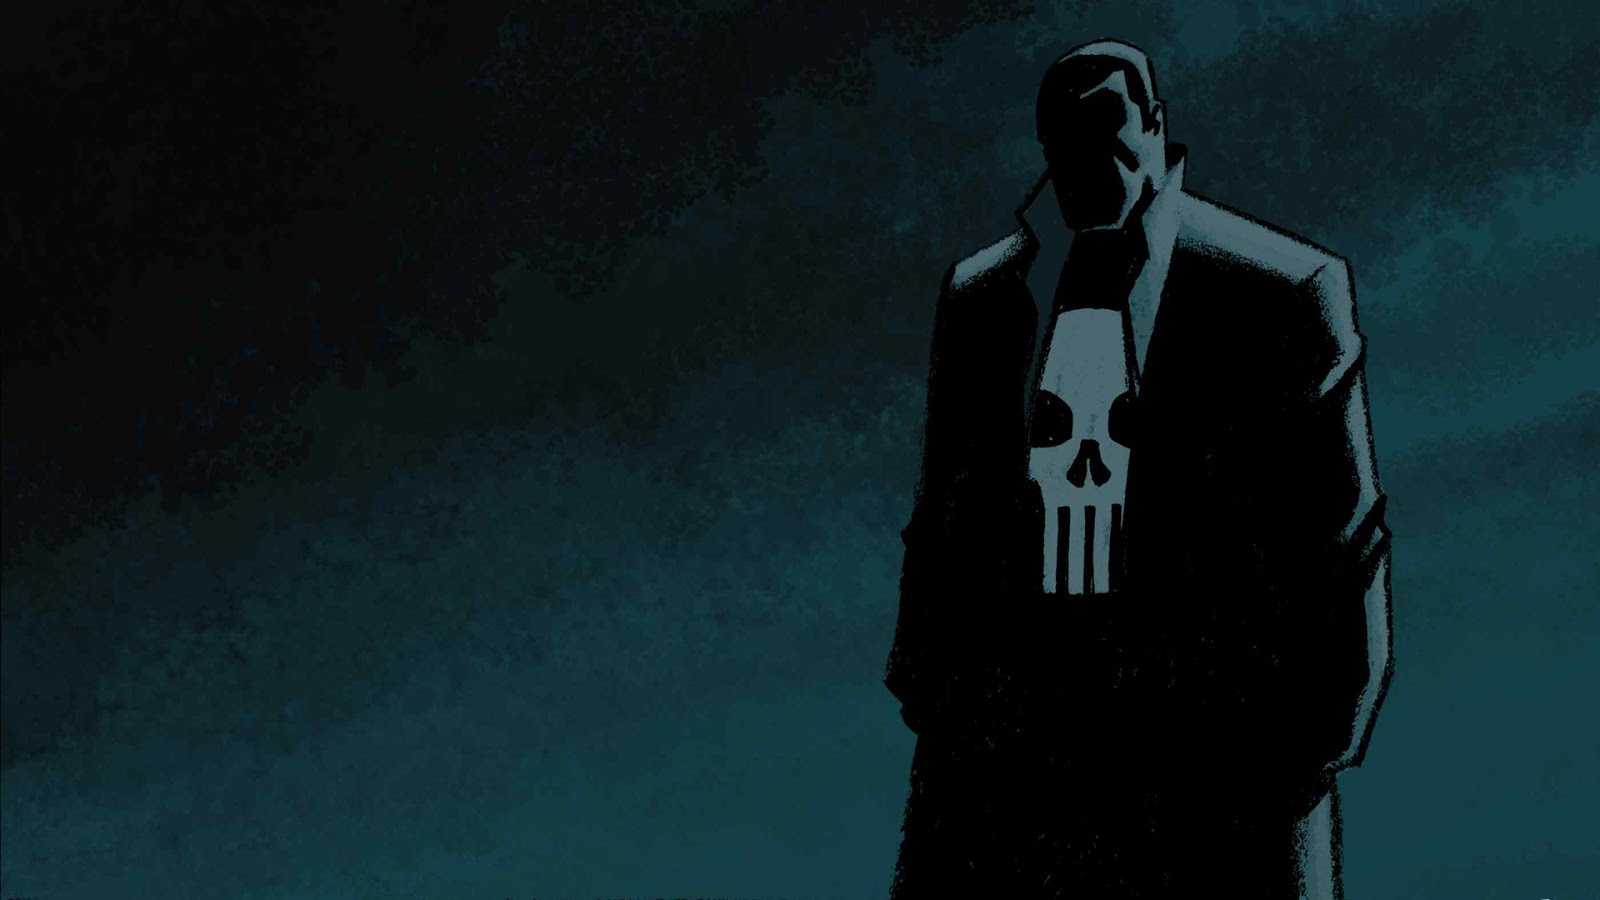 Comic Wallpapers The Punisher   Comic Wallpaper 1600x900